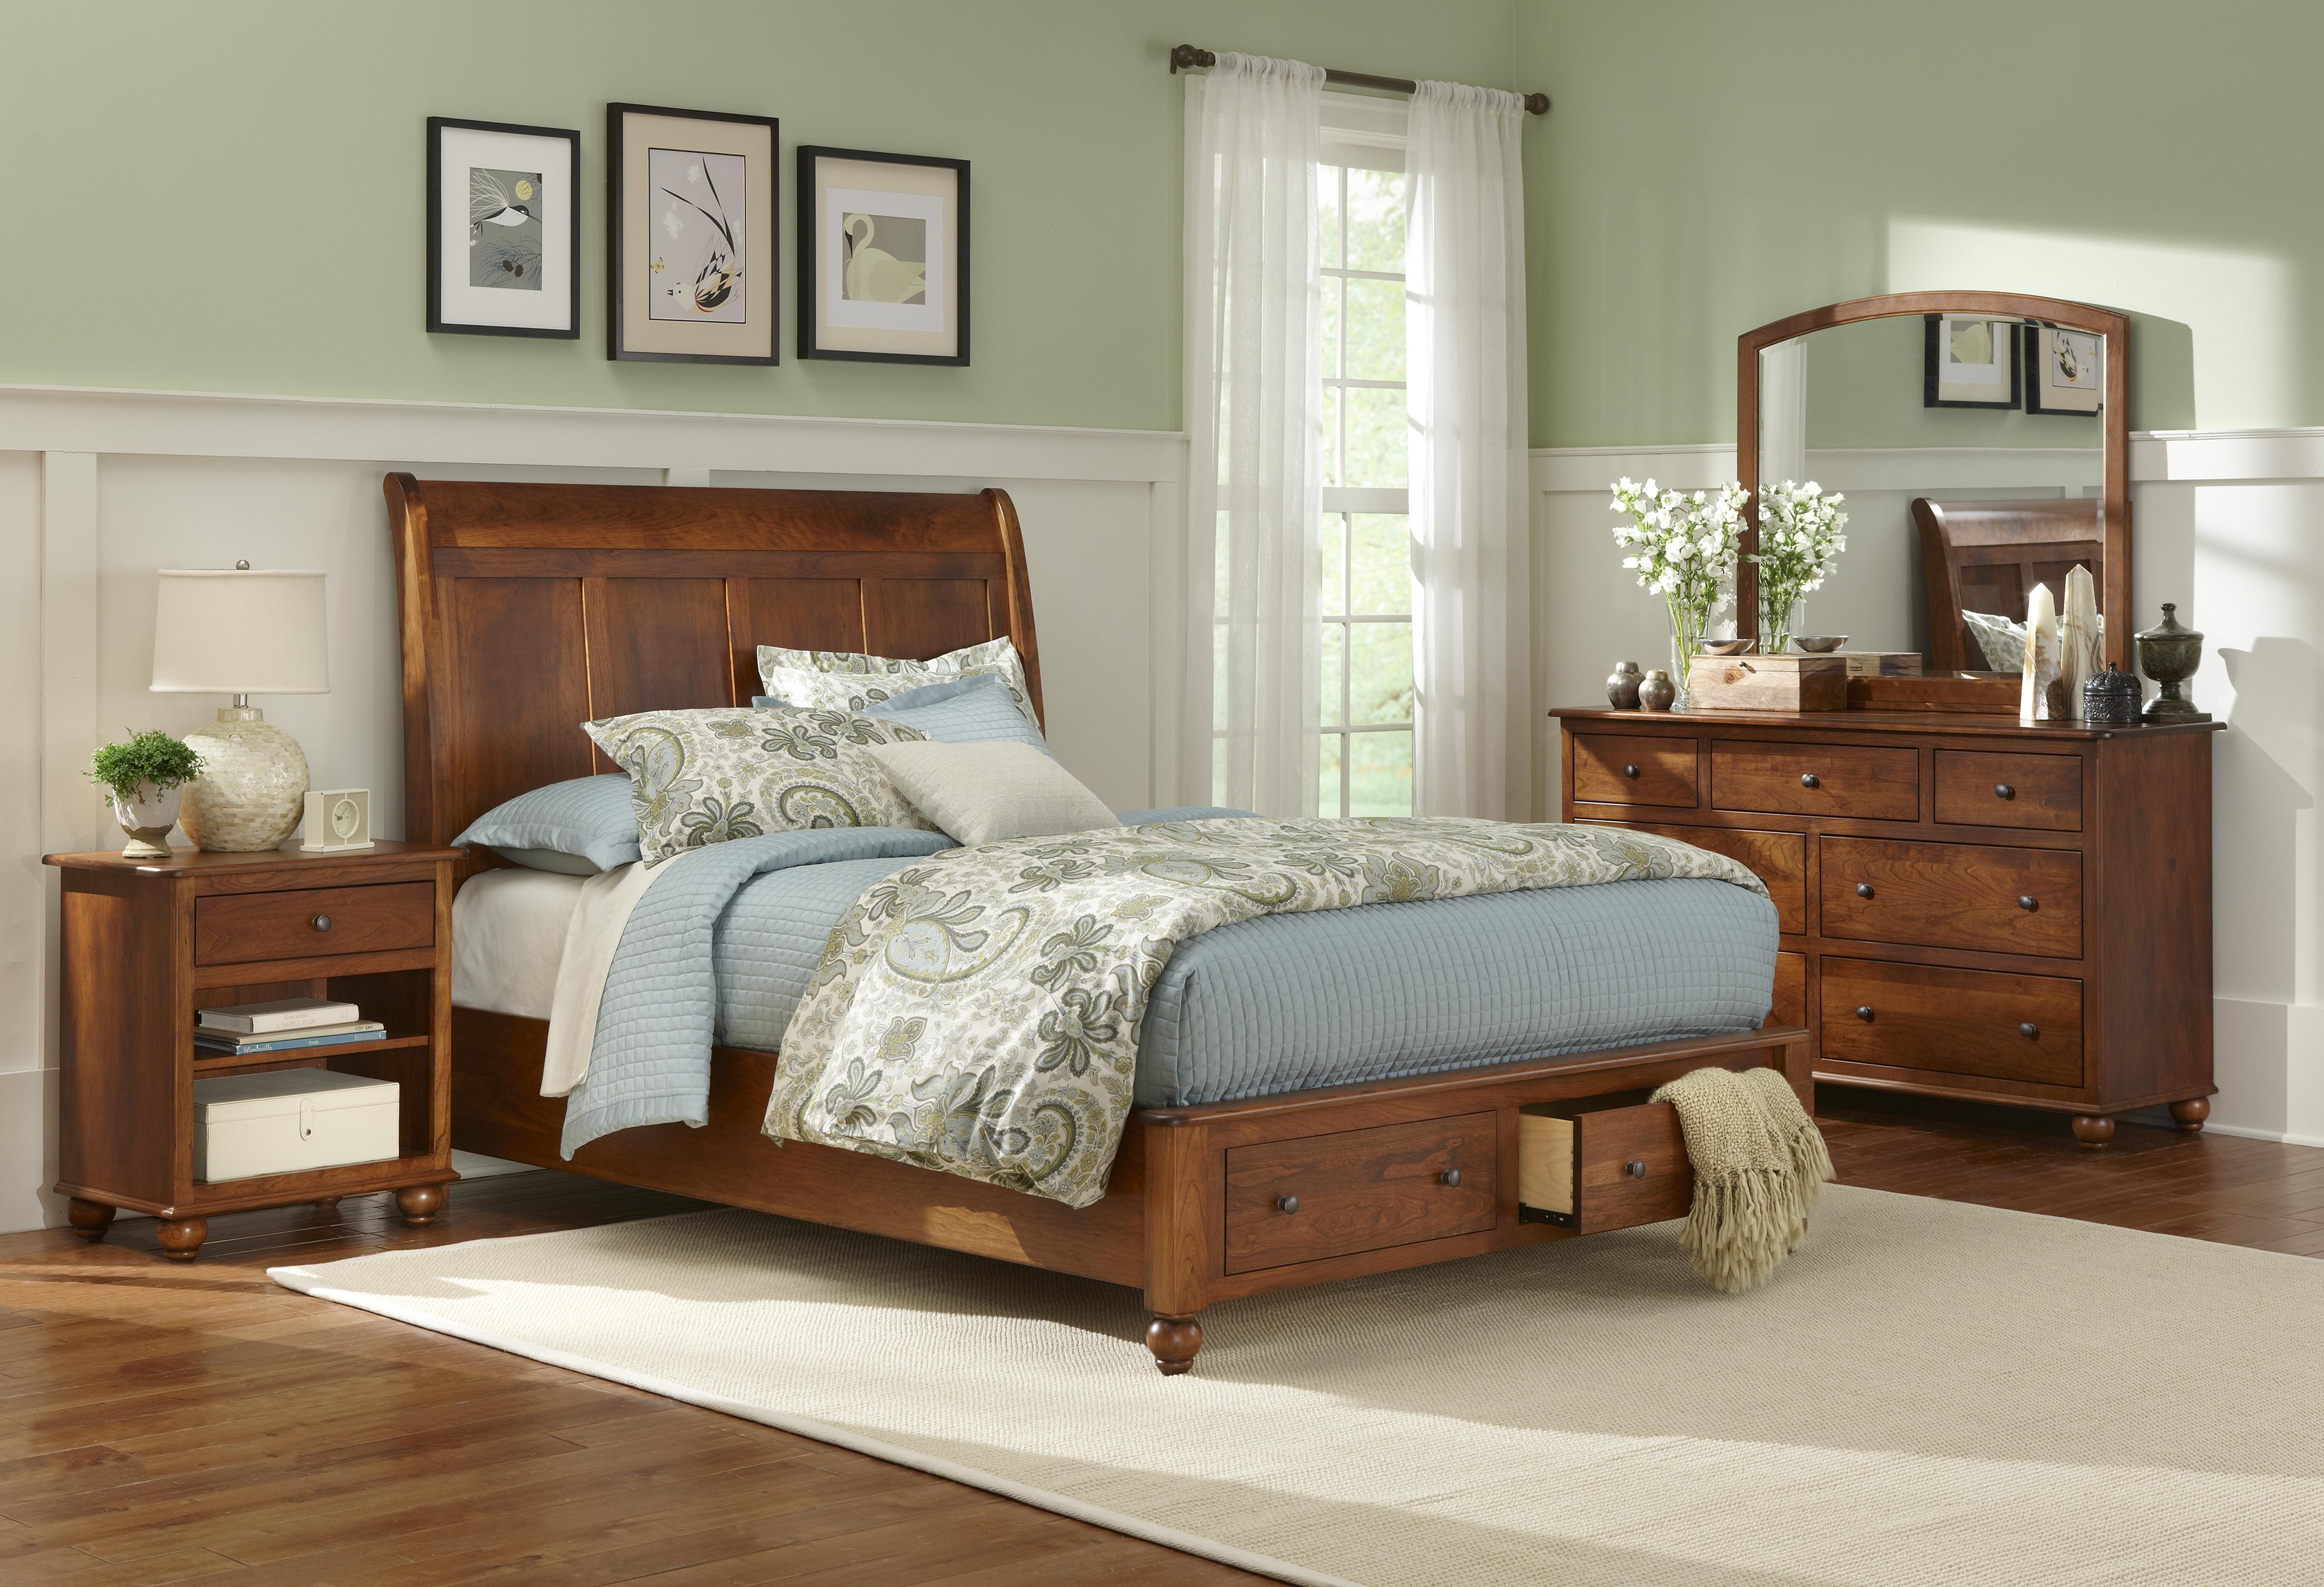 L.J. Gascho Furniture Covington Cairnbrook King Storage Bed - Item Number: 2KHB/KSTFB/KRS